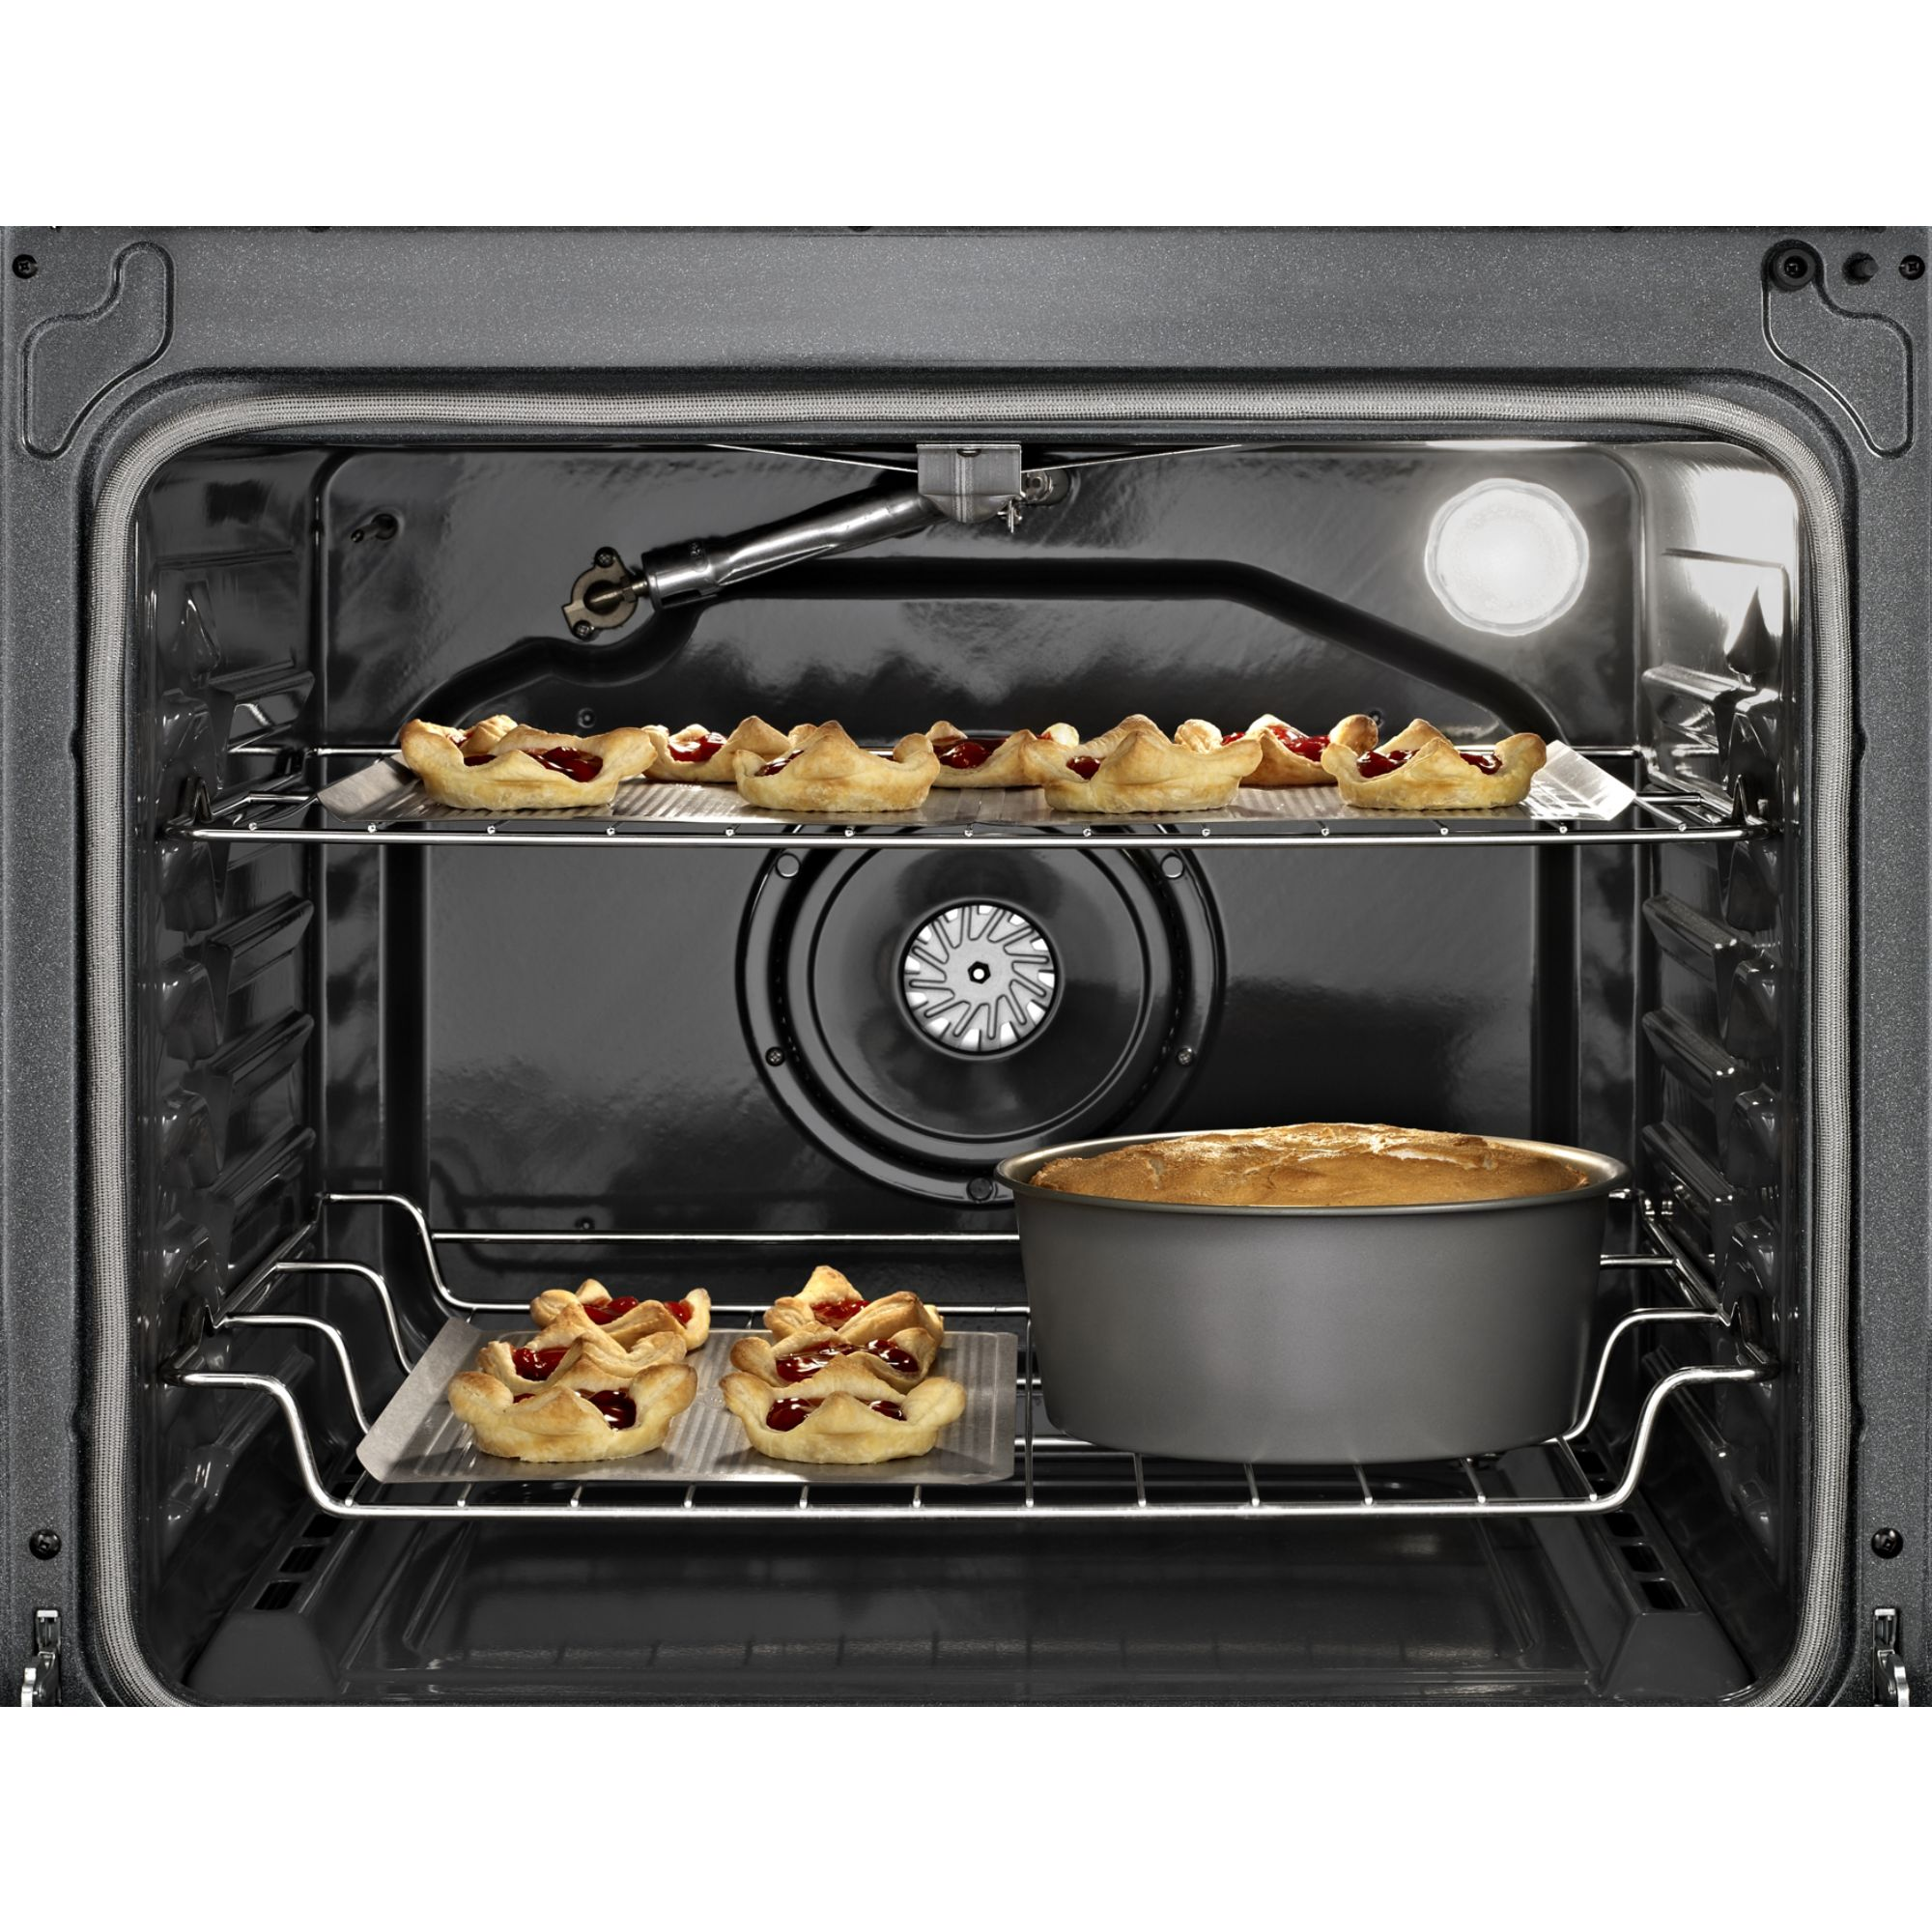 Whirlpool 5.8 cu. ft.  Freestanding Gas Range w/ AquaLift™ Self-Clean Technology - Black